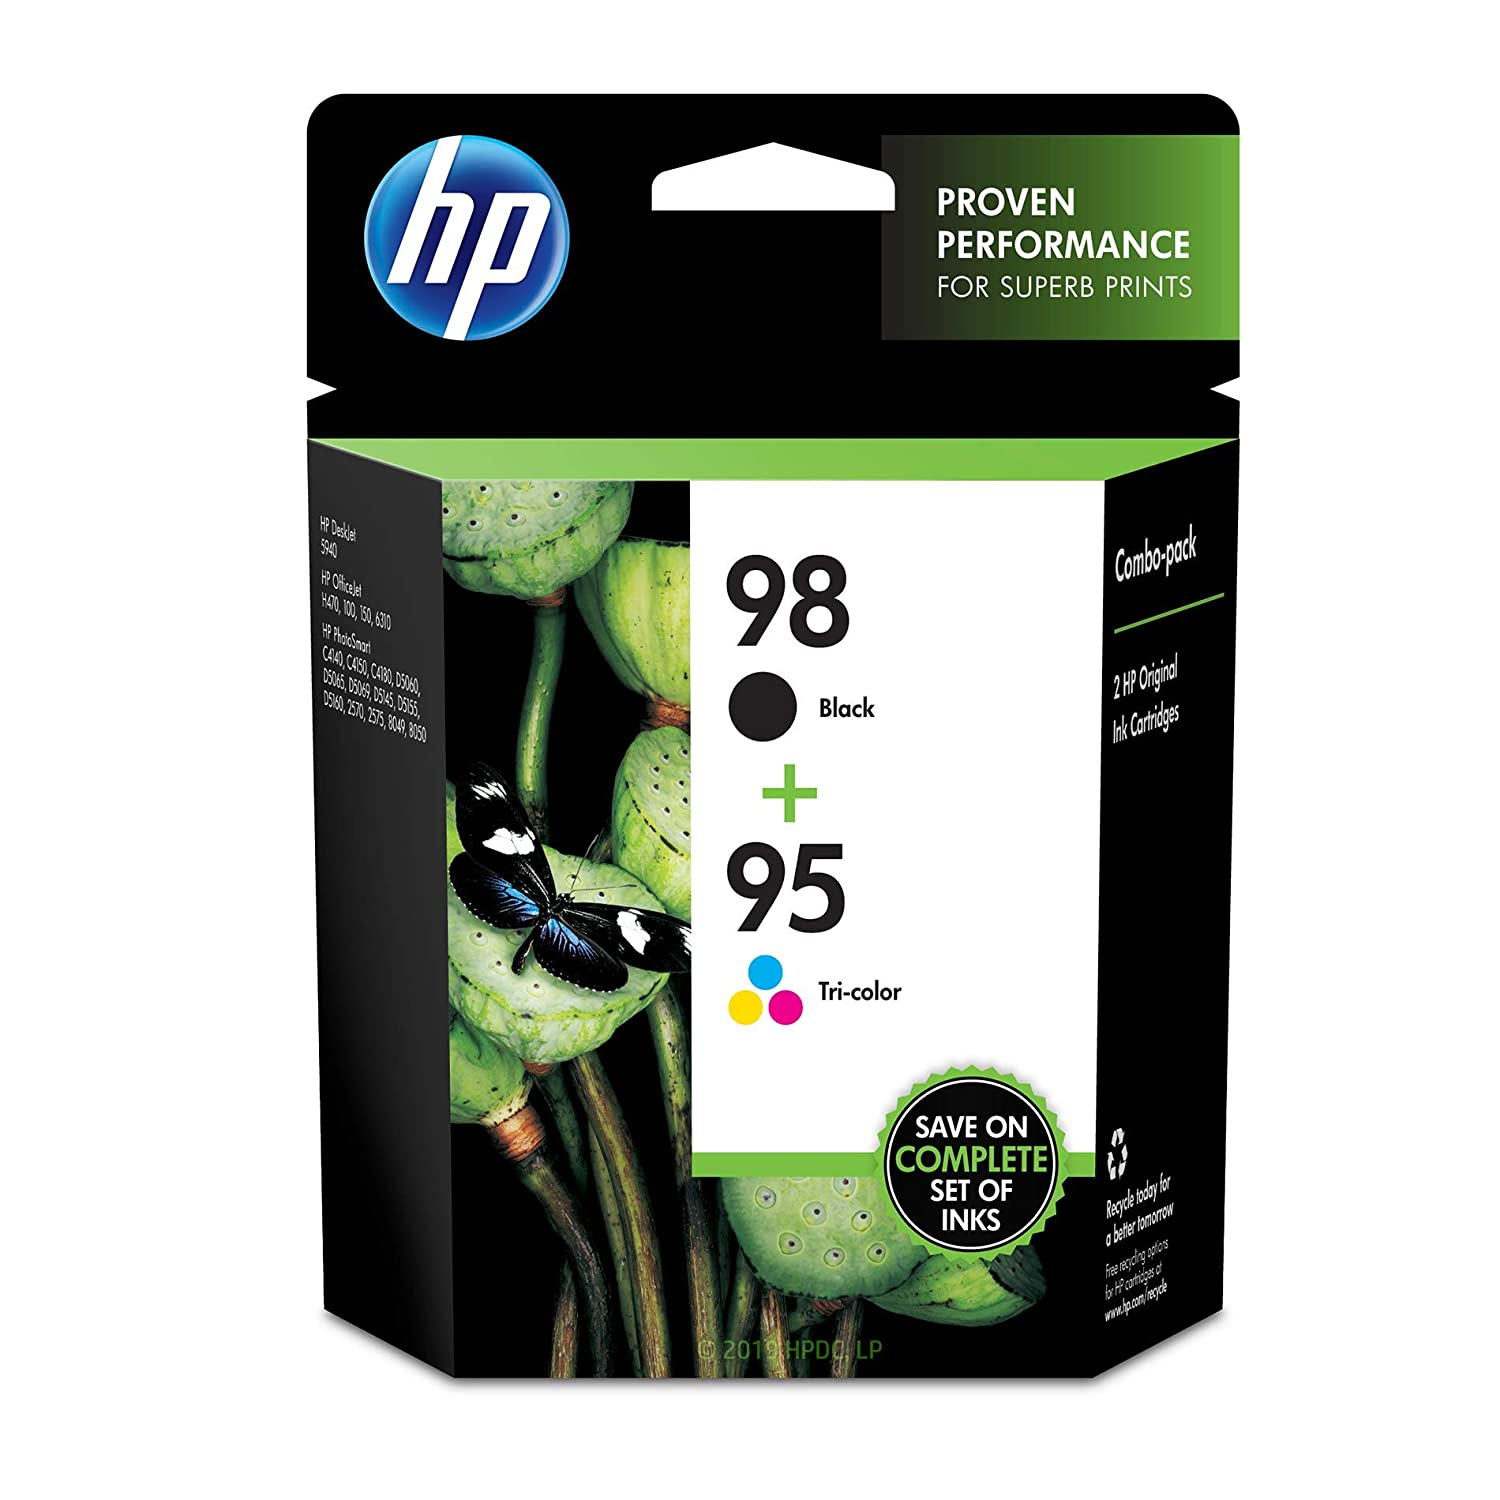 HP 95 | 2 Ink Cartridges | Black, Tri-color | C9364WN, C9368WN